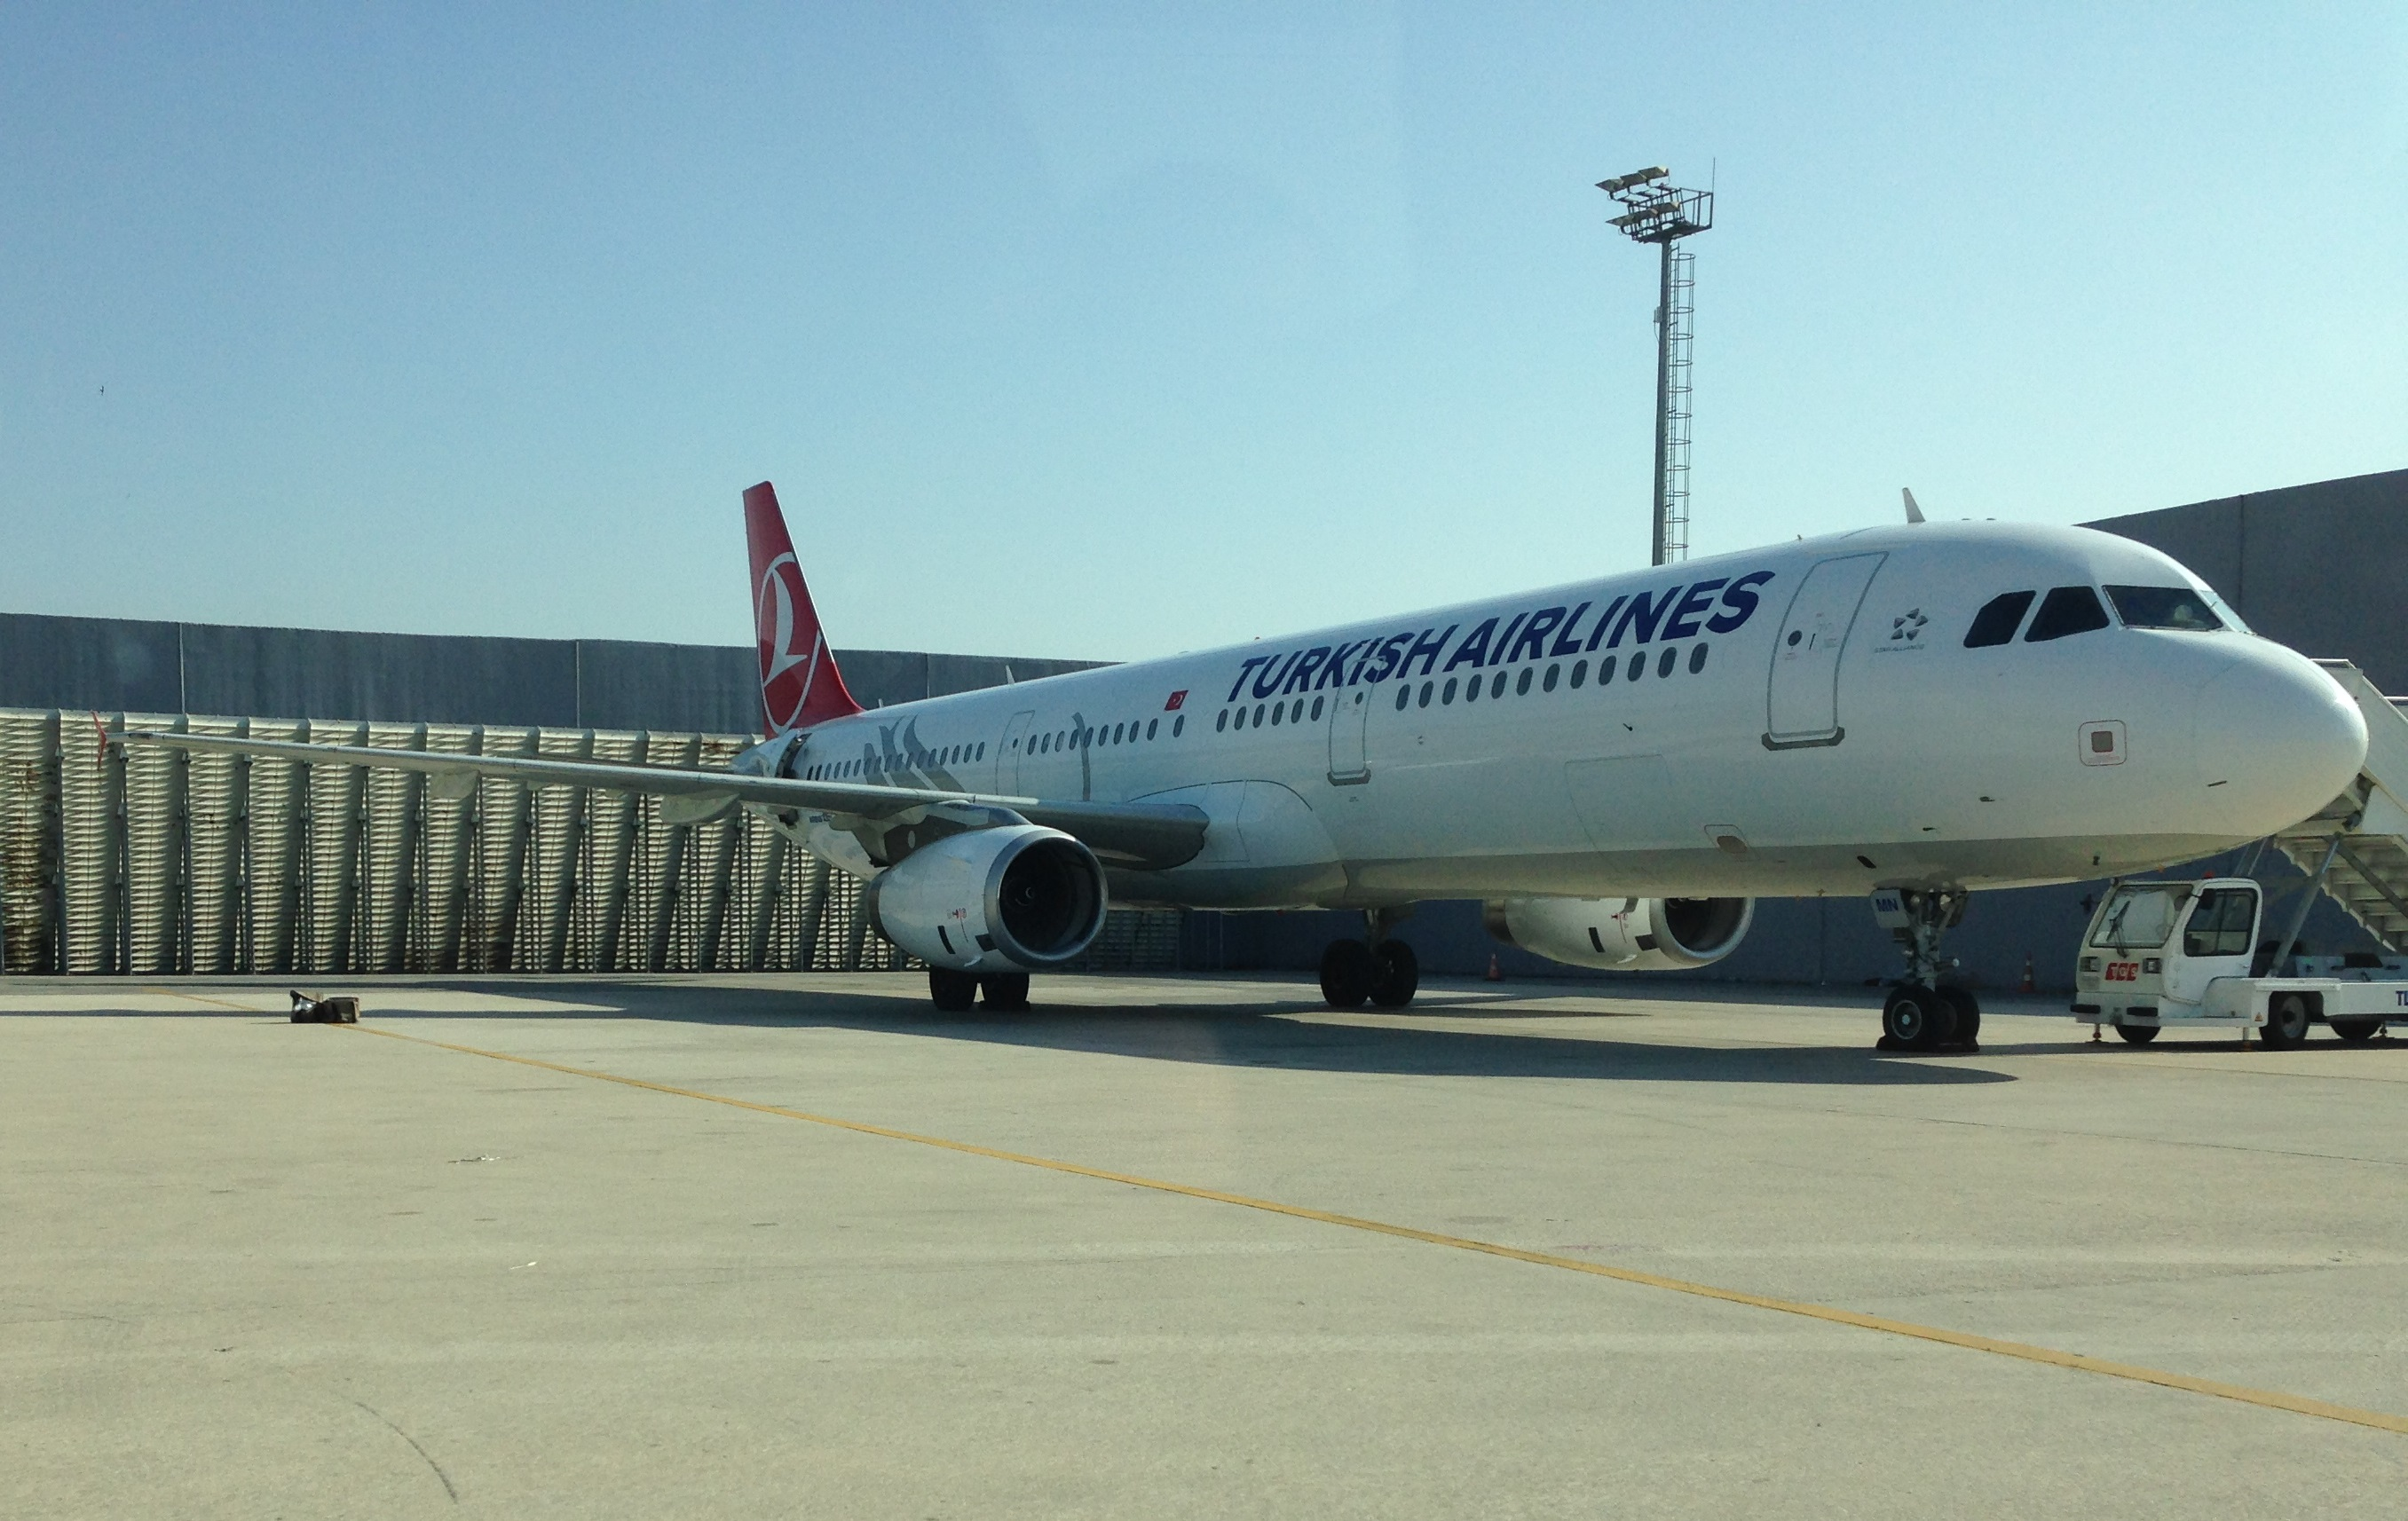 Turkish Airlines - Airbus A321-200 (TC-JMN)